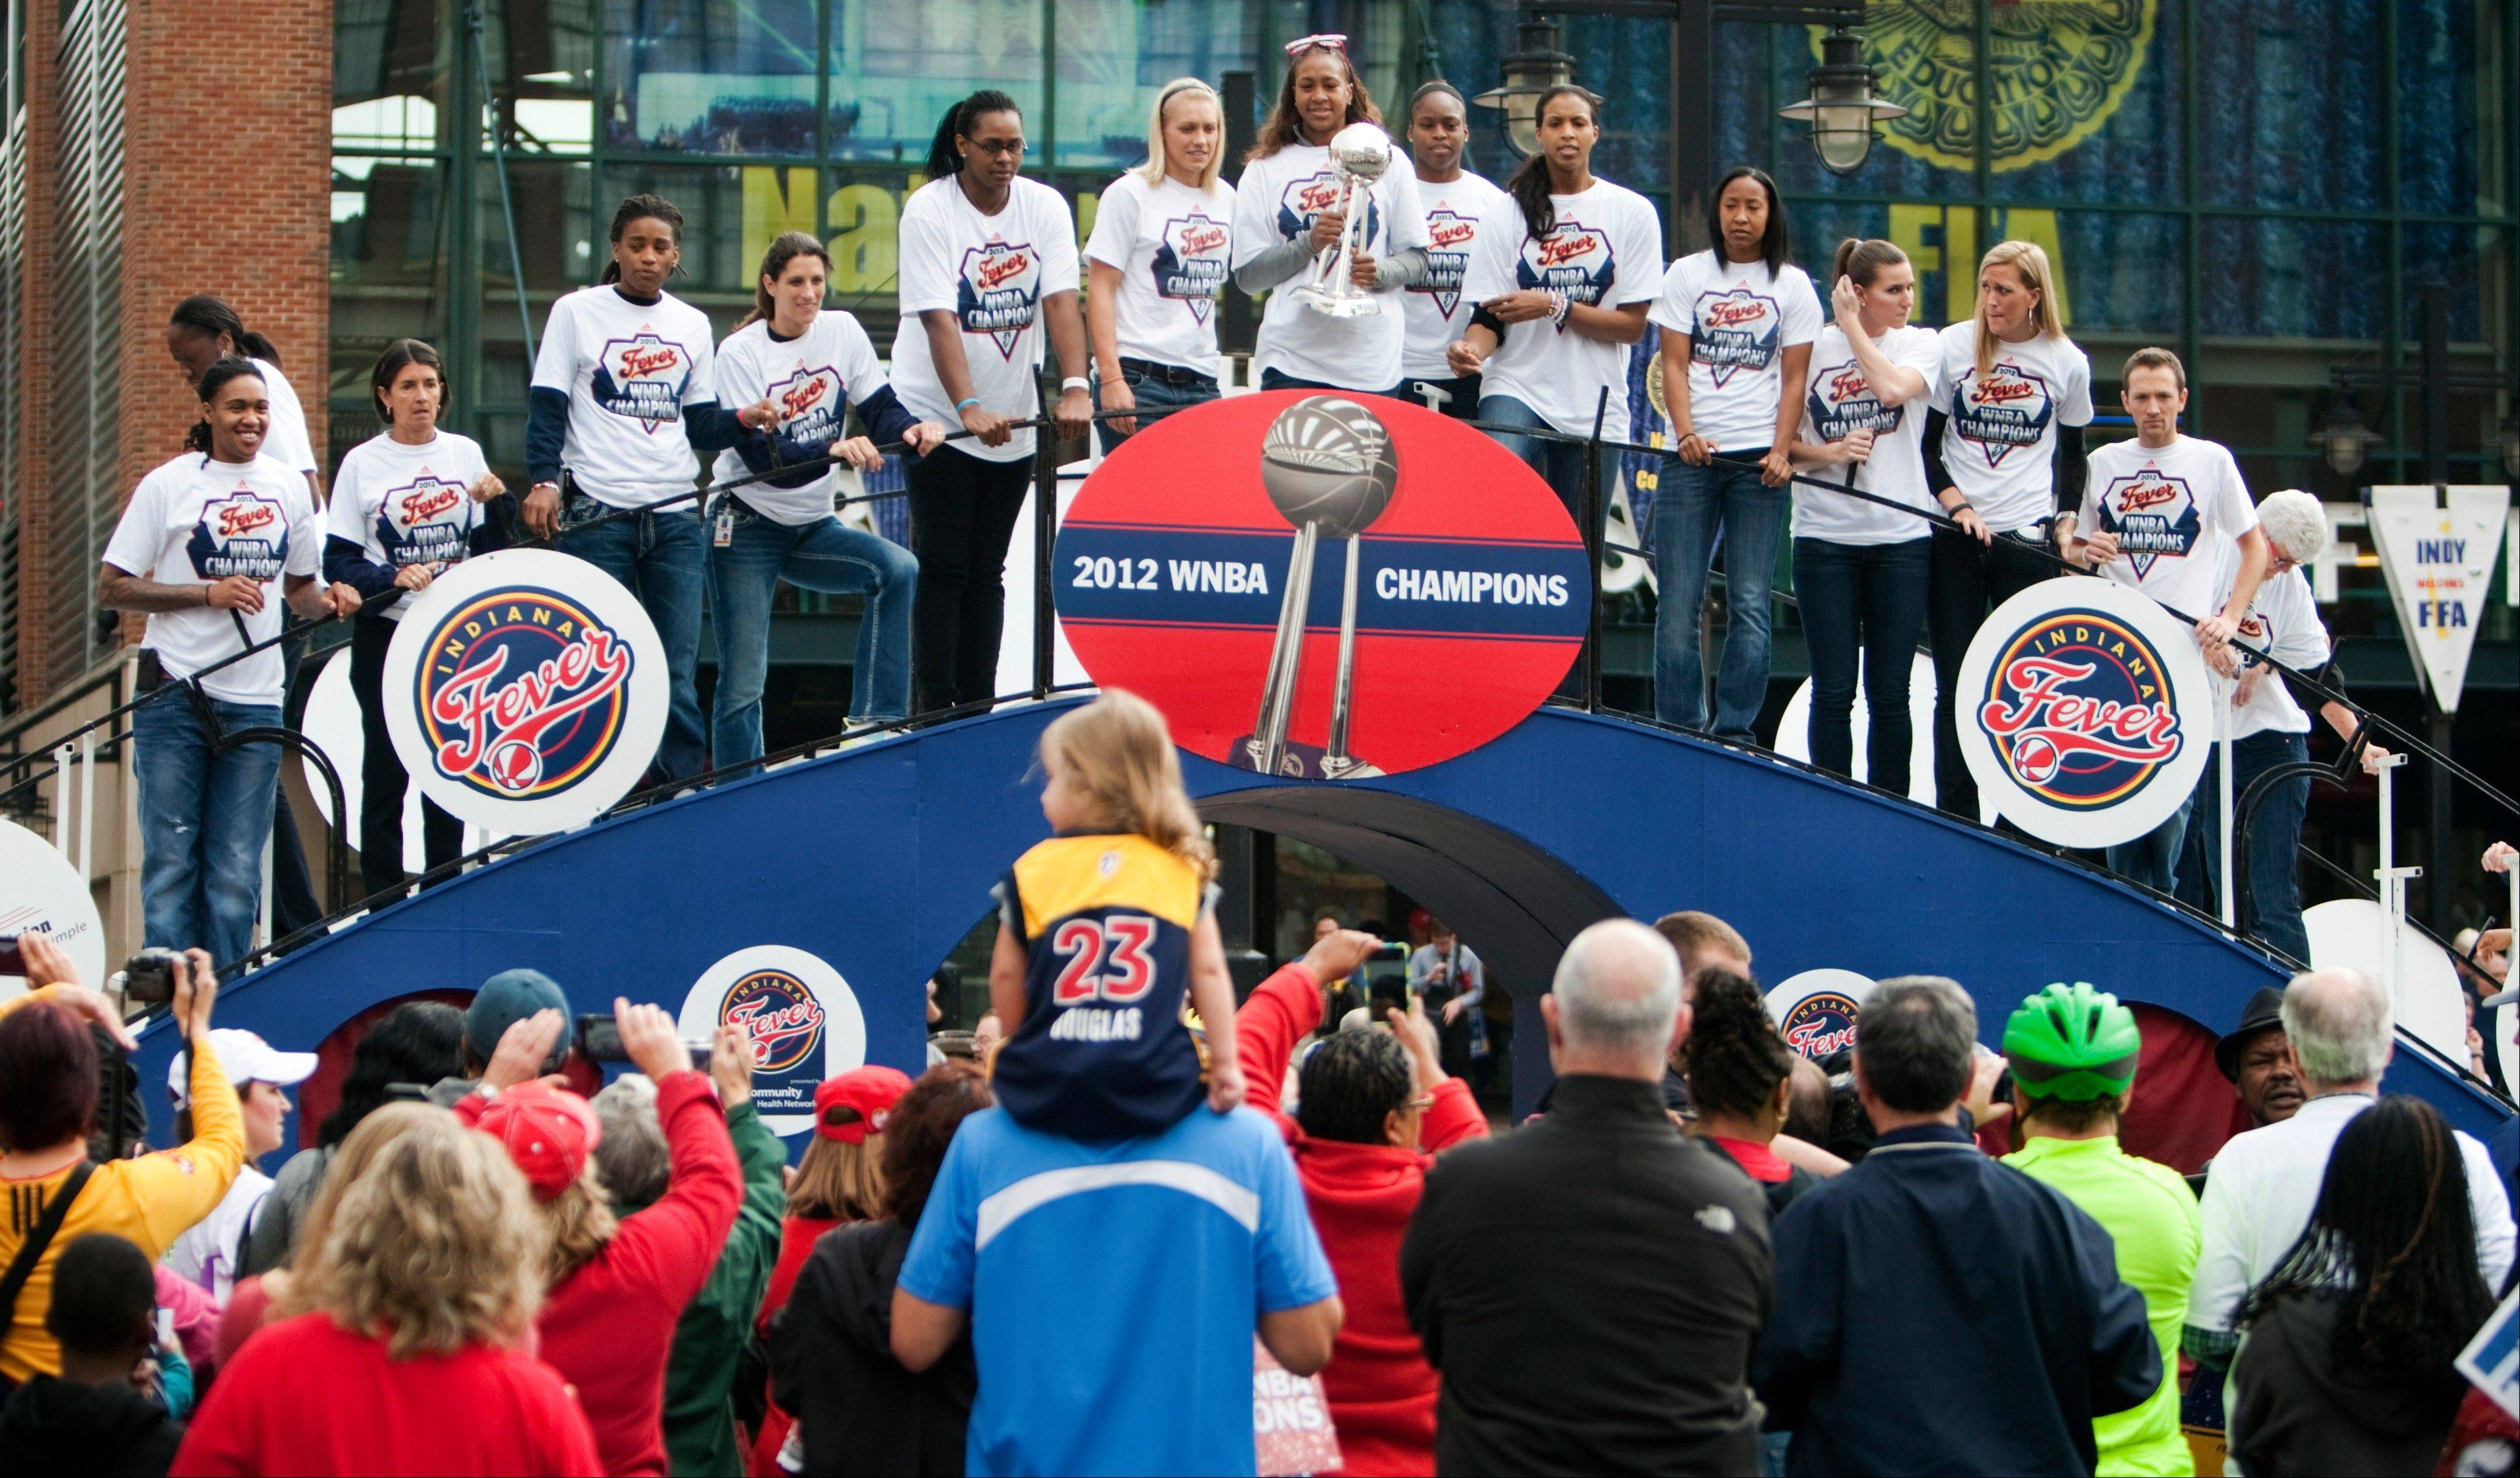 Indiana Fever forward Tamika Catchings, center, holds the trophy atop a float with other members of the team during a celebration for their WNBA basketball championship at Bankers Life Fieldhouse in Indianapolis. The team and several thousand fans moved their party indoors Tuesday as morning rain scrapped plans for a parade.